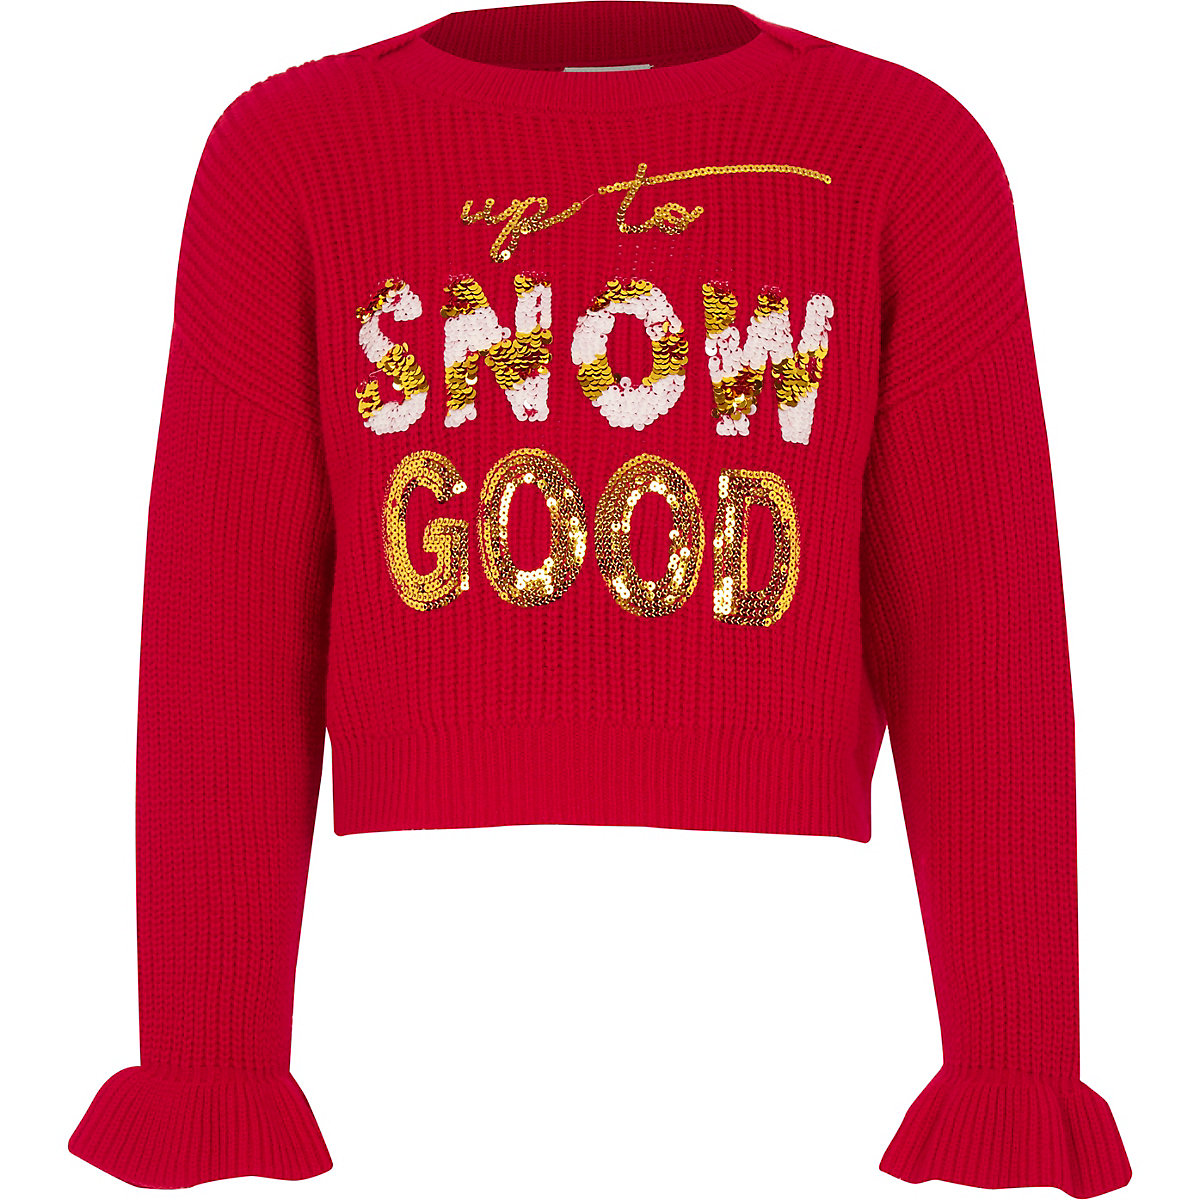 Girls red 'Snow good' Christmas jumper